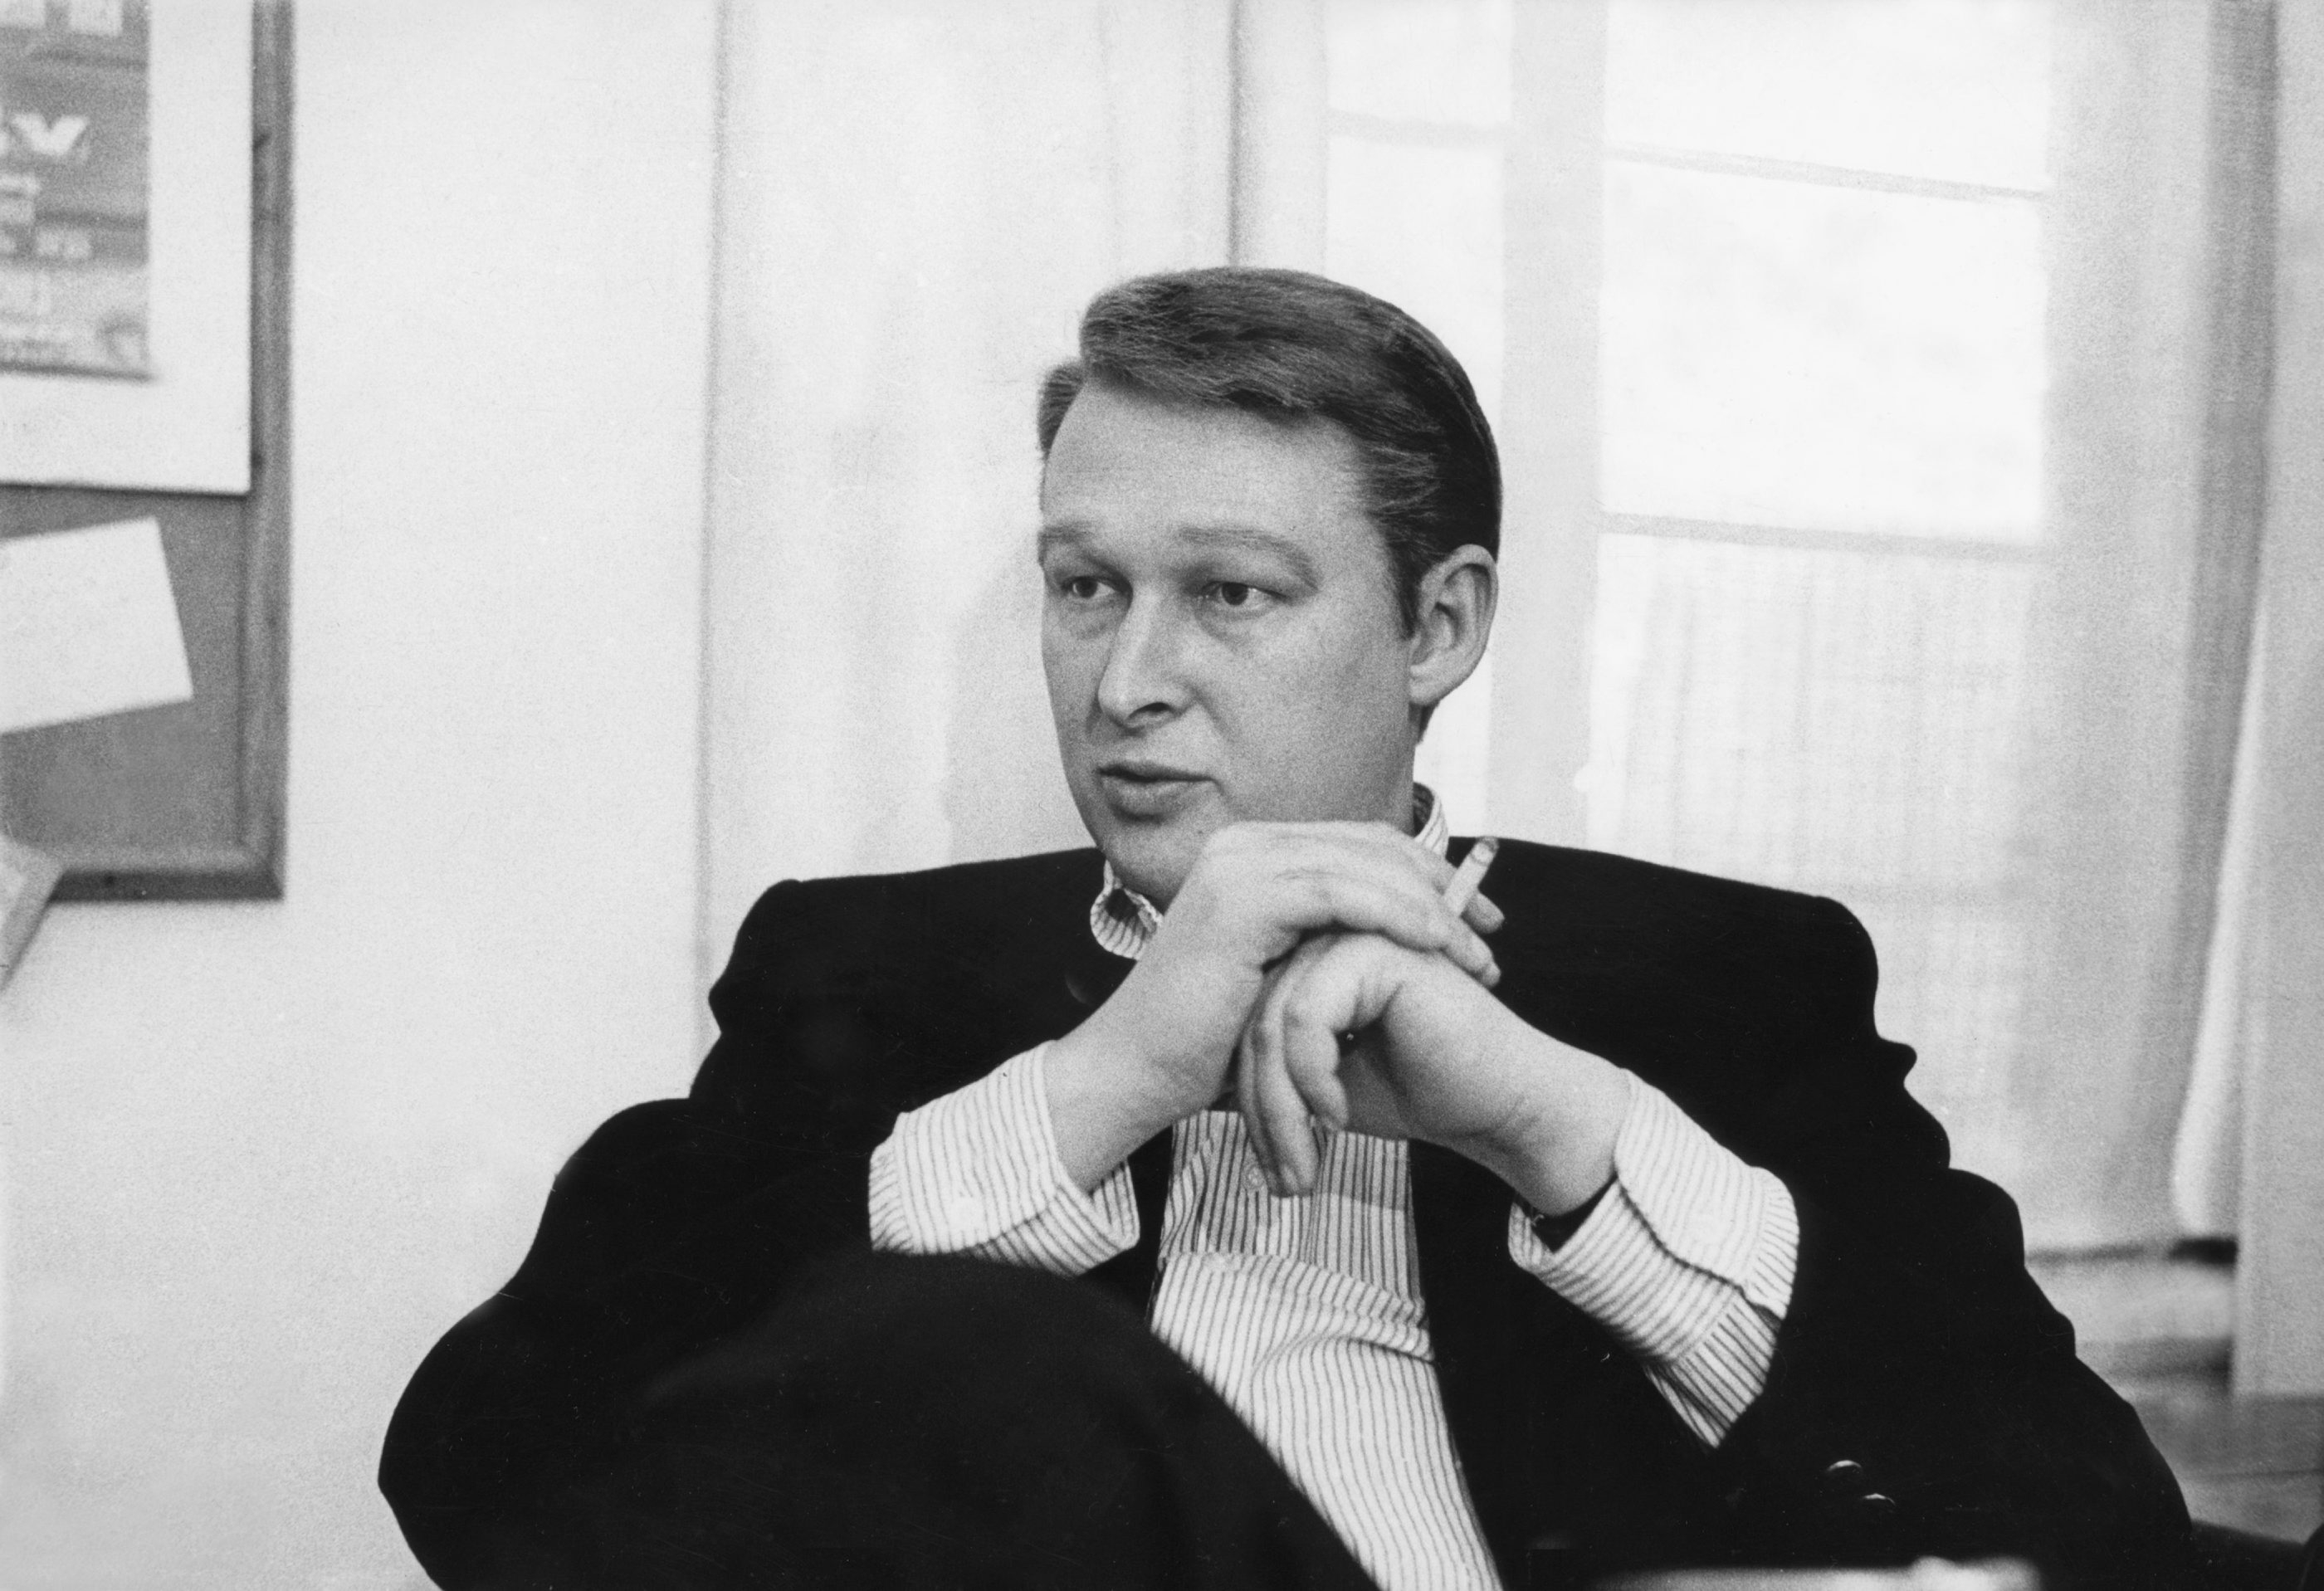 """In HBO's """"Becoming Mike Nichols,"""" the late director discusses his career, mainly the early years. Above, Nichols is pictured in 1966, the year he directed Richard Burton and Elizabeth Taylor in """"Who's Afraid of Virginia Woolf?"""""""